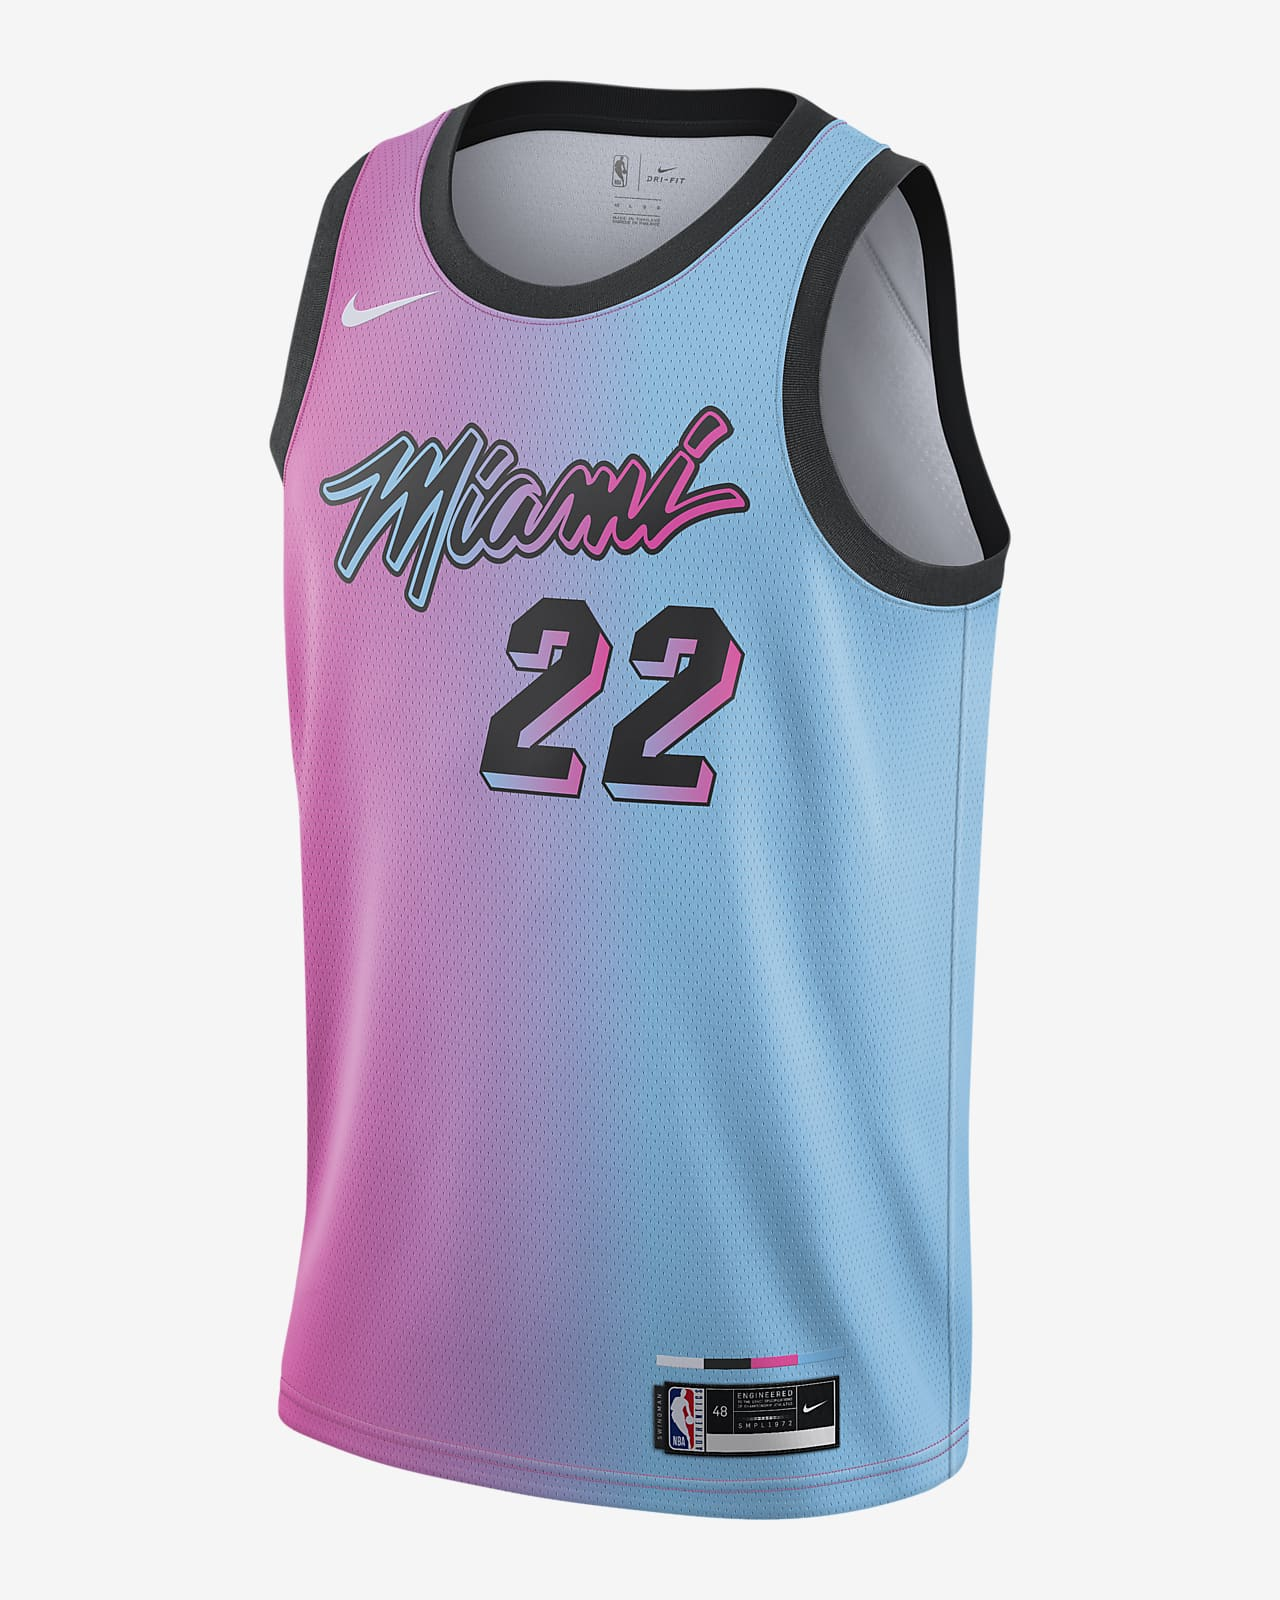 Camisola NBA da Nike Swingman Miami Heat City Edition